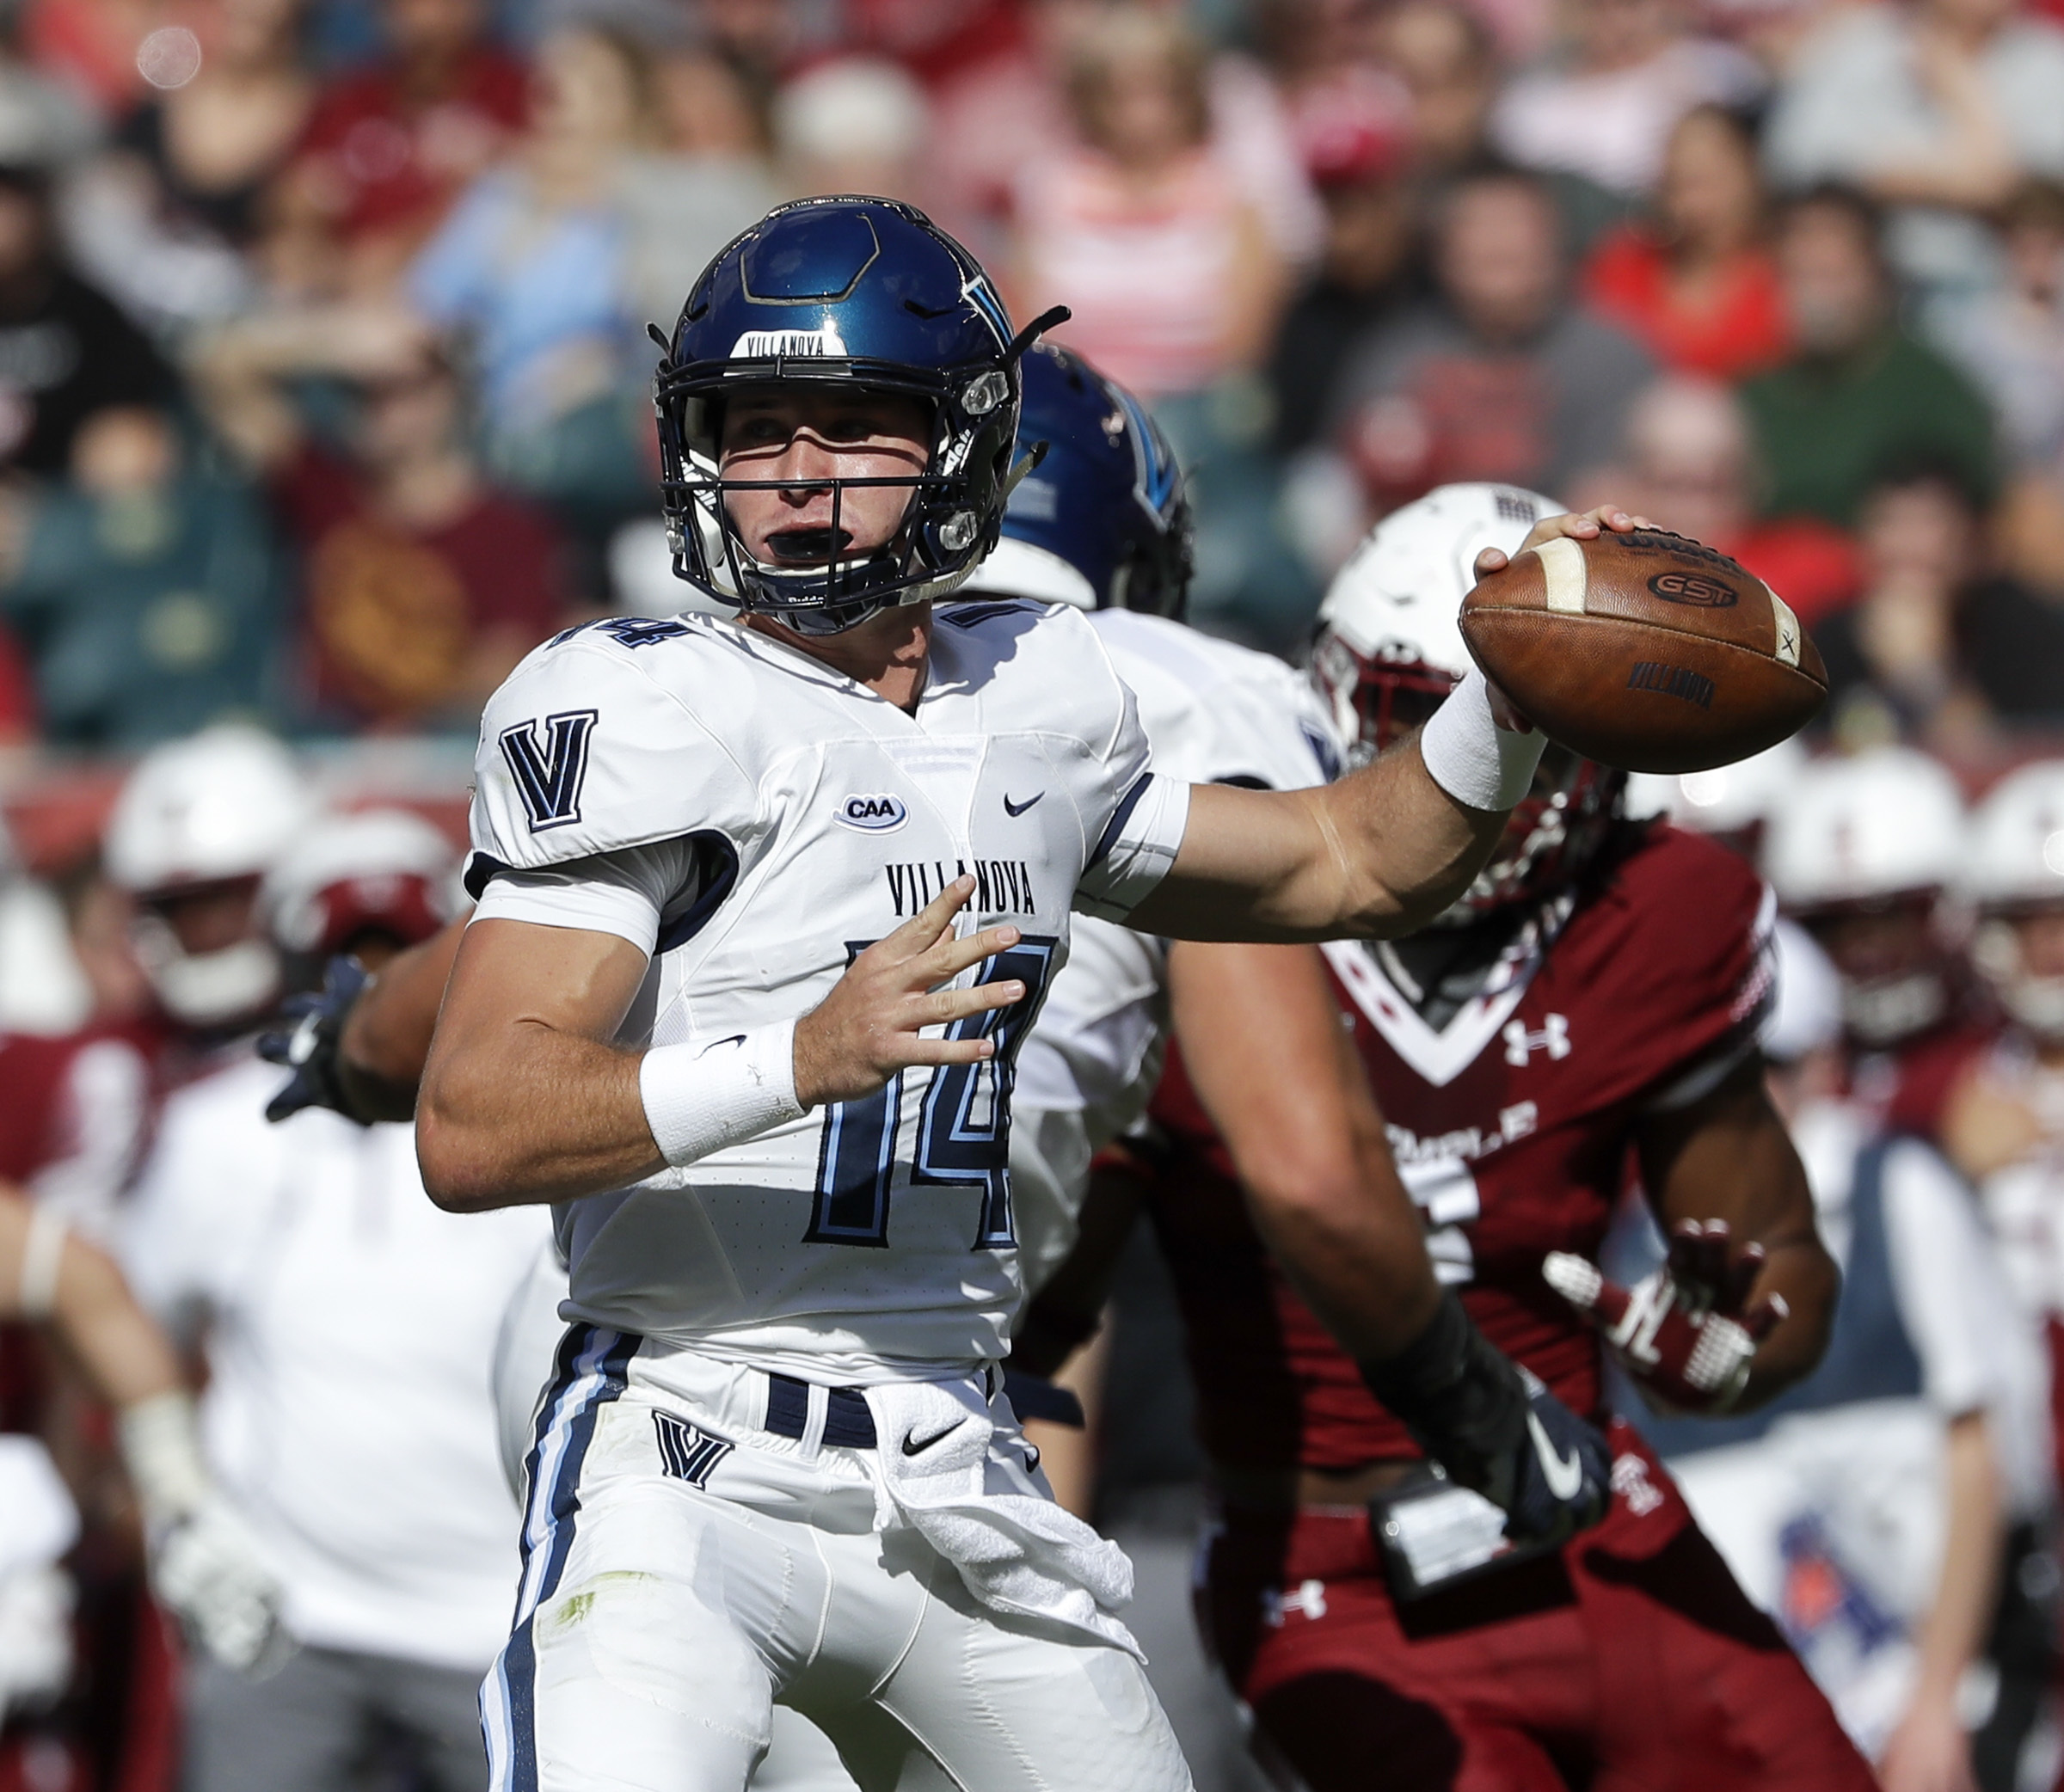 Villanova quarterback Zach Bednarczyk throws the football against Temple on Saturday, September 9, 2017 in Philadelphia. YONG KIM / Staff Photographer